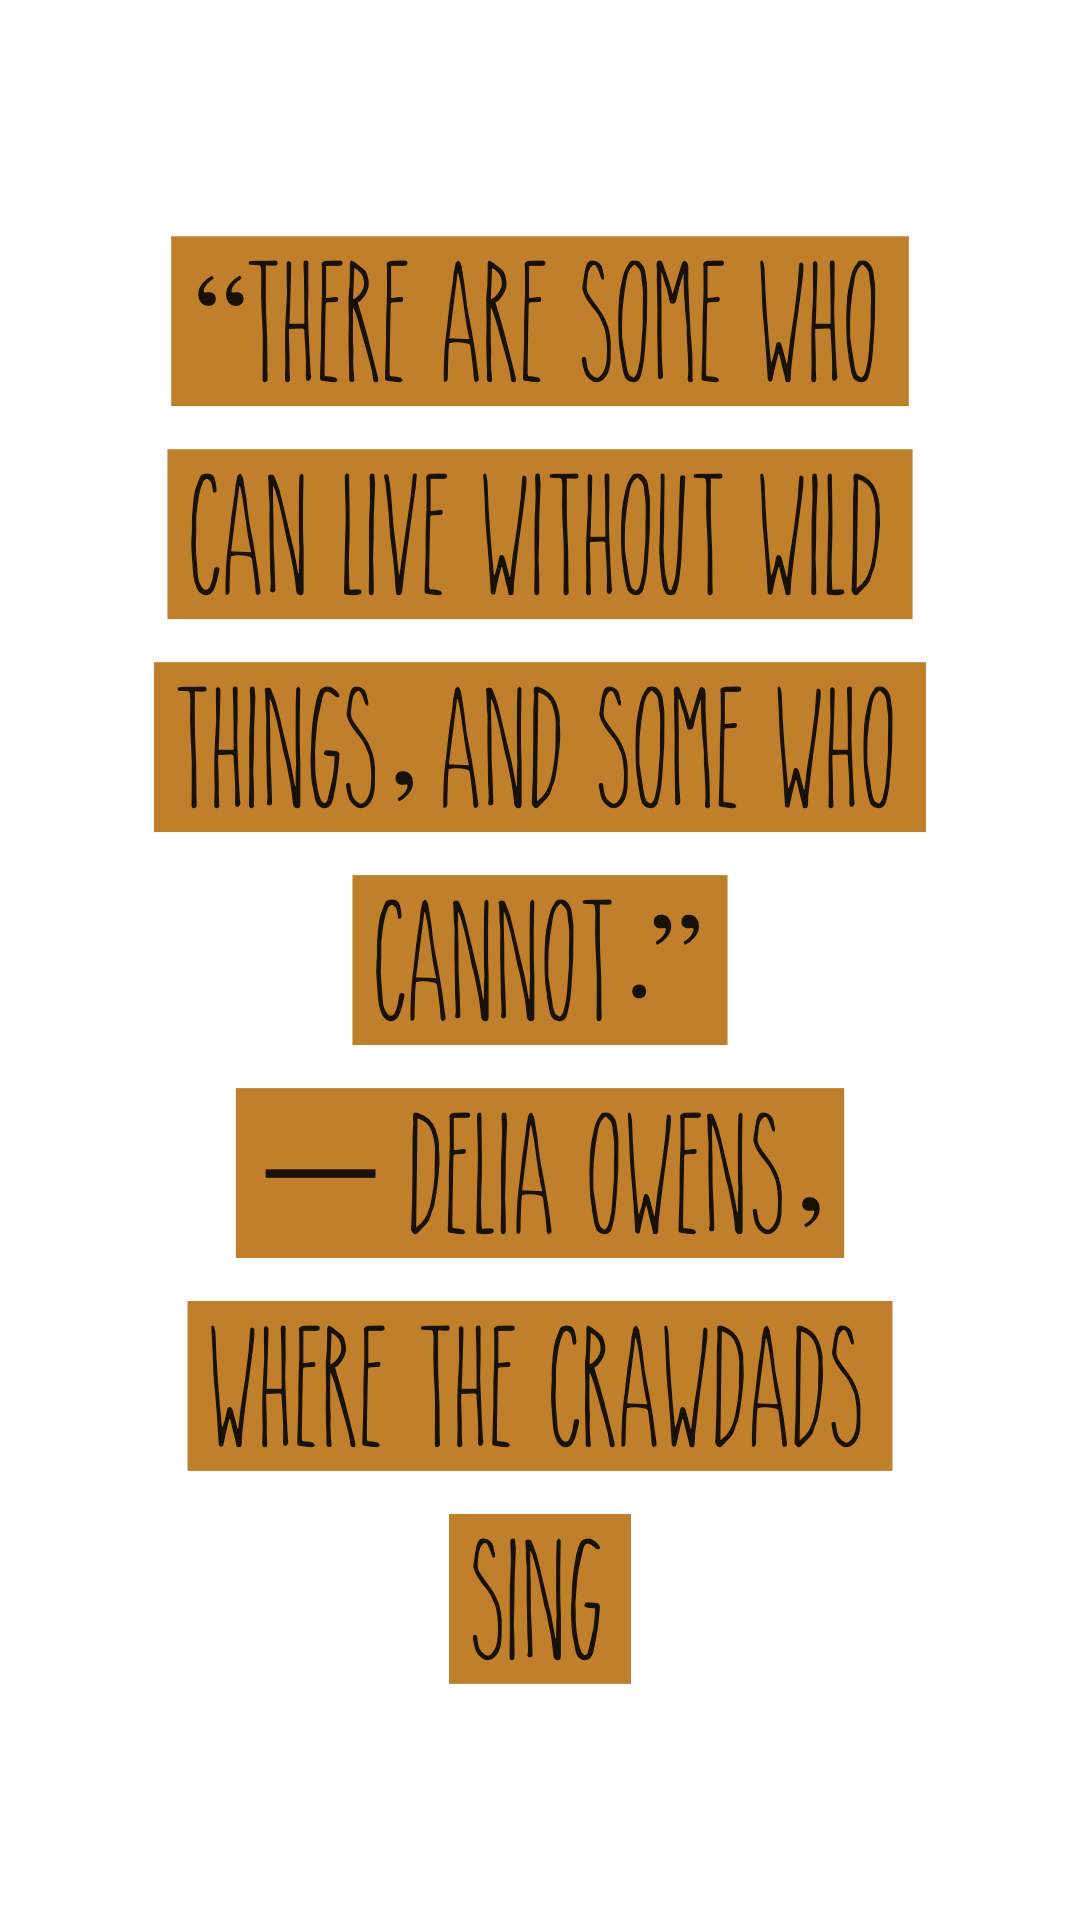 There are some who can live without wild things and some